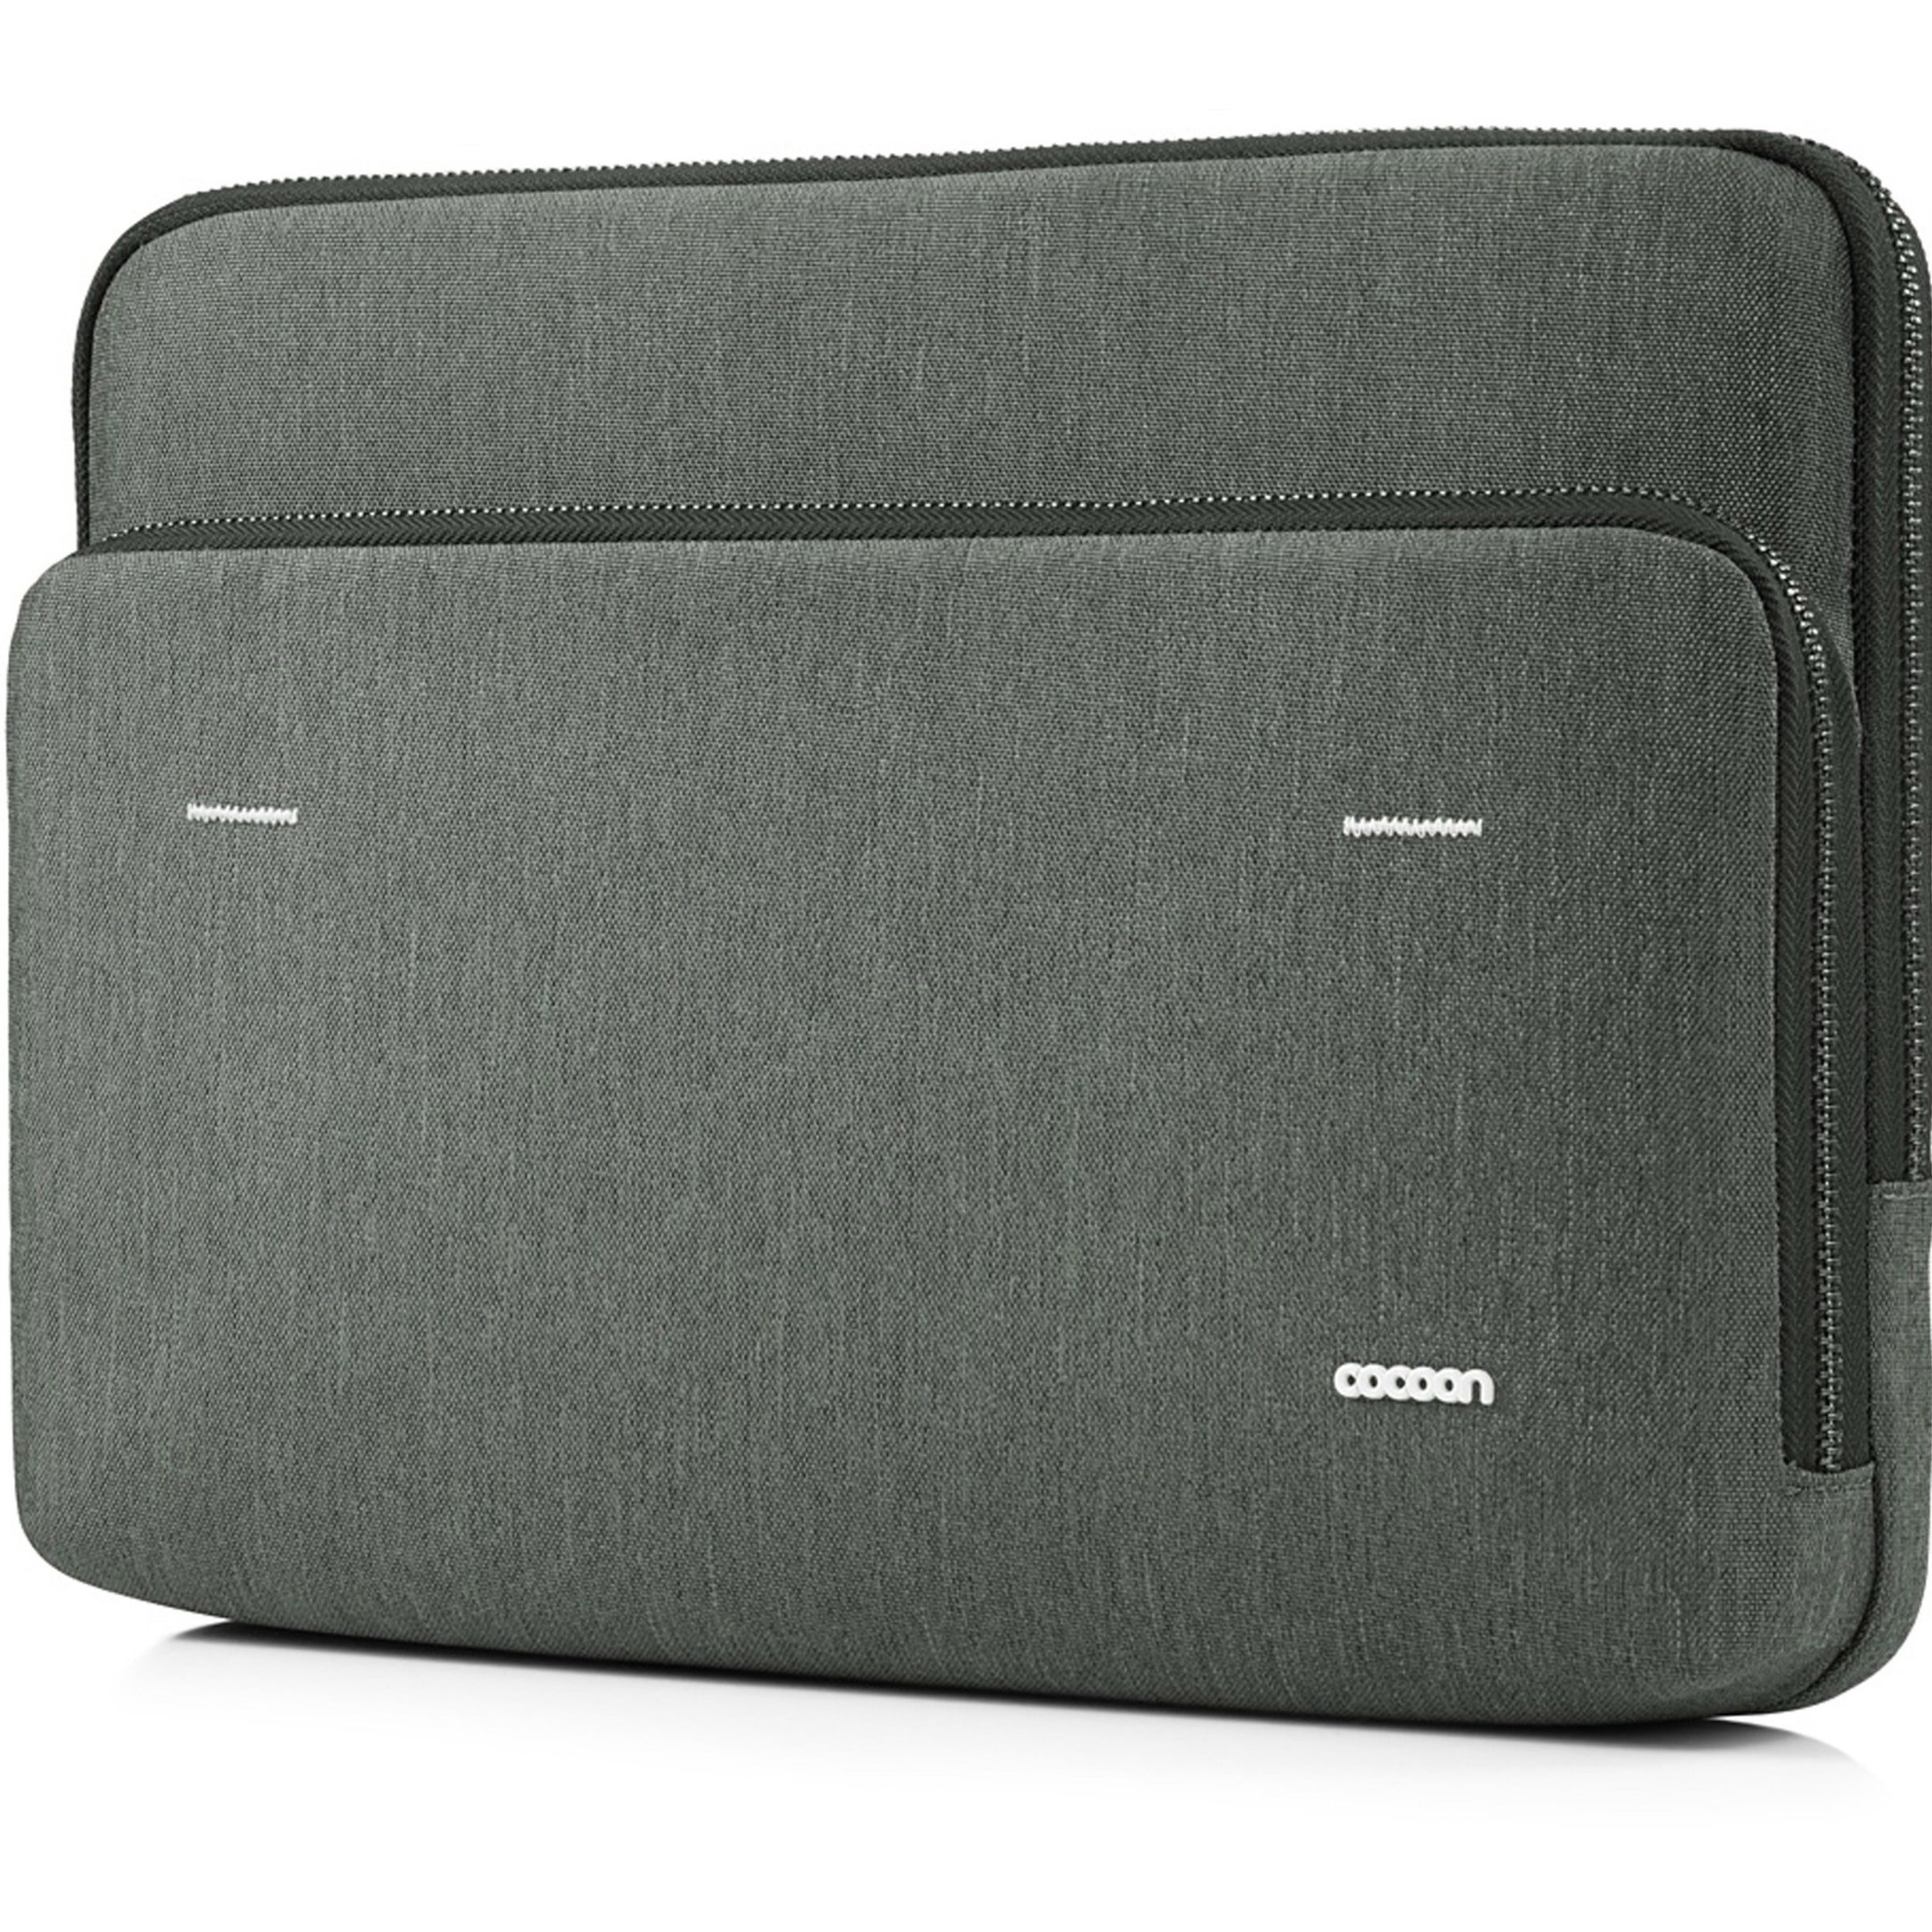 "Cocoon Innovations Cocoon Carrying Case (Sleeve) for 13"" ..."